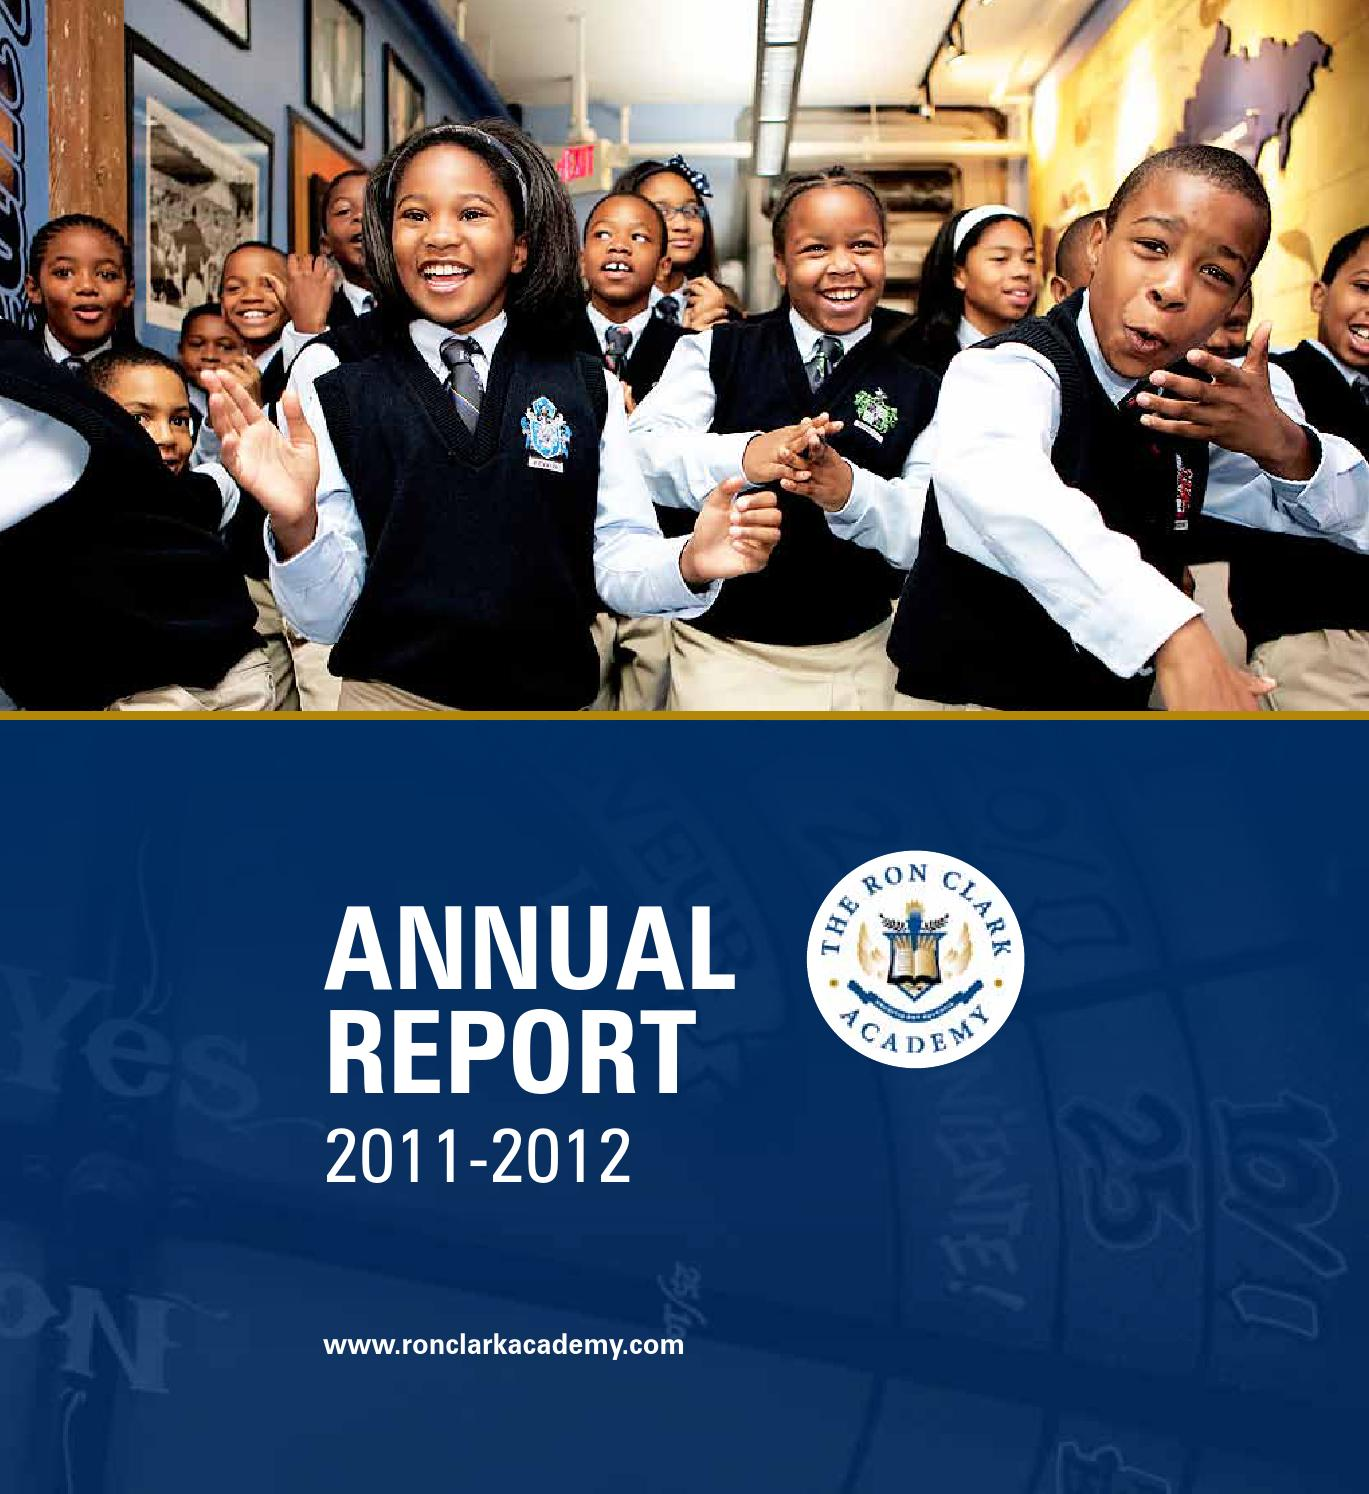 RCA Annual Report 2012 By The Ron Clark Academy